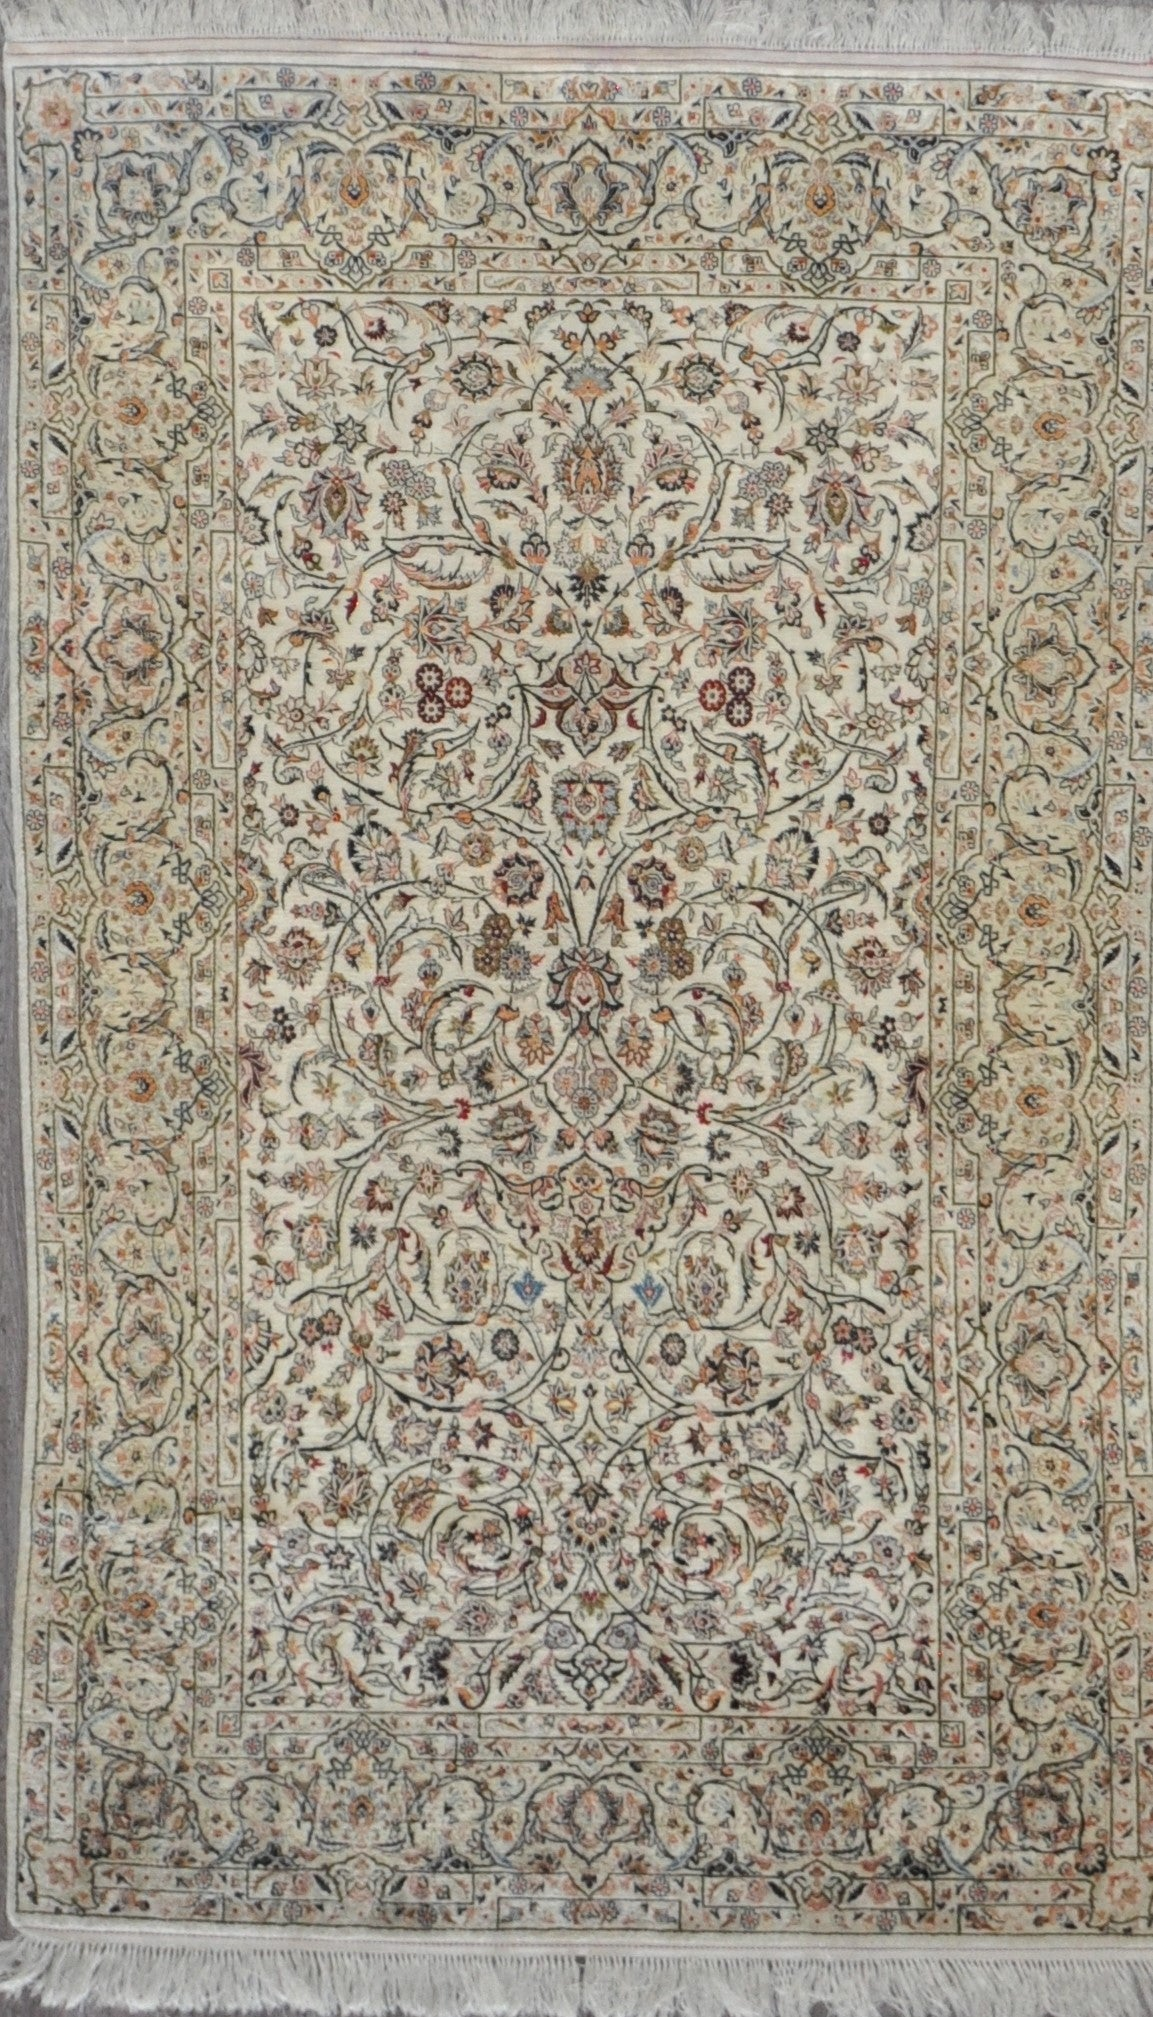 4.3x7.2 persian semi ant kashan silk #21138